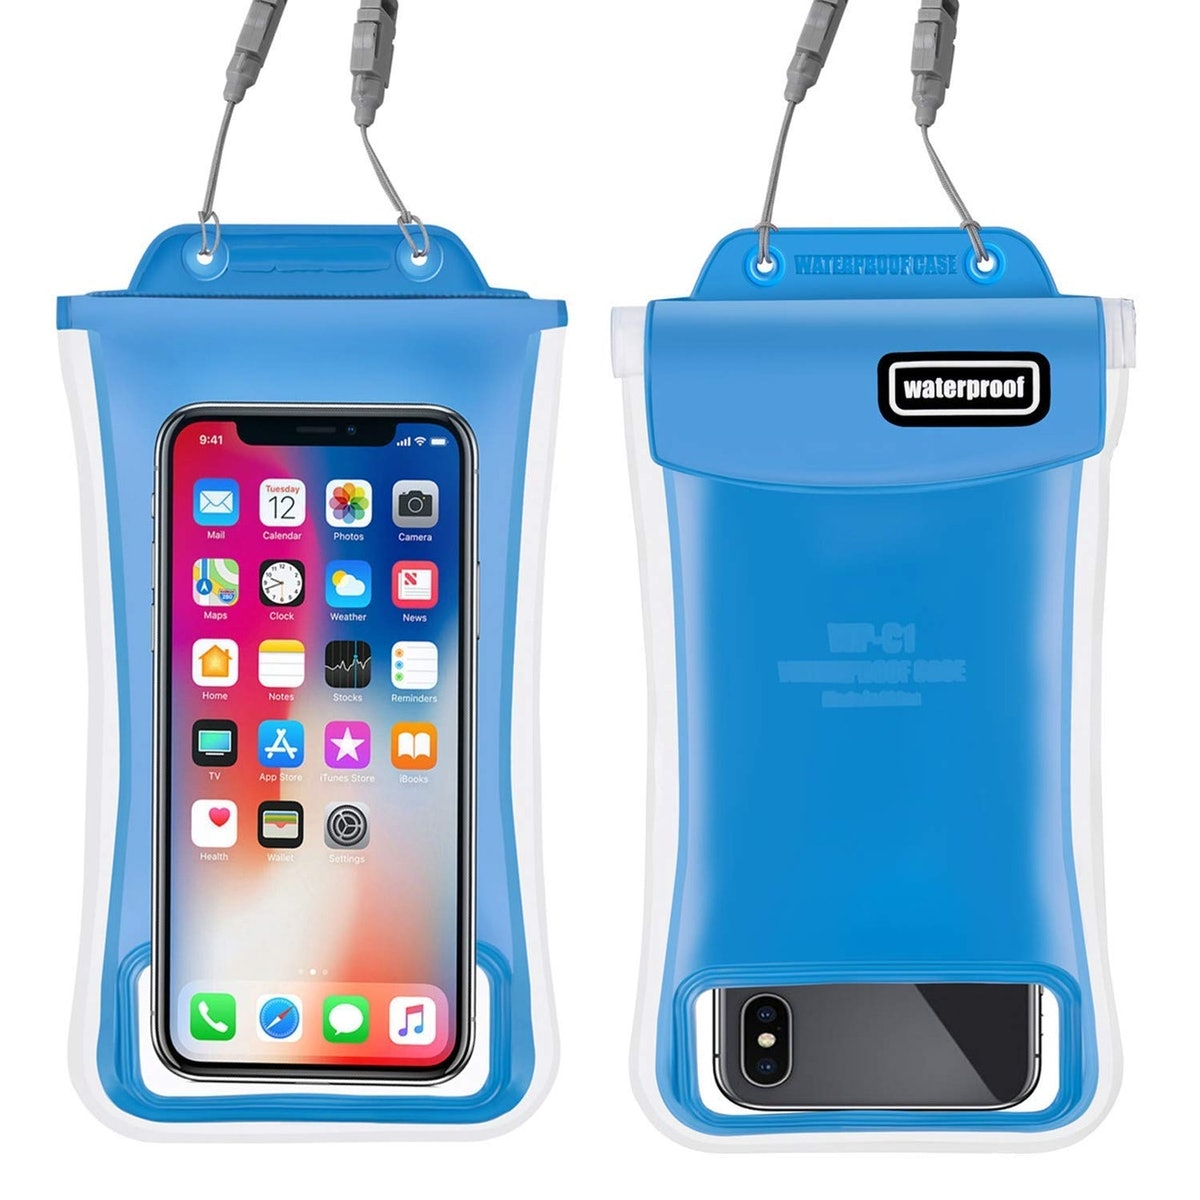 Gihery Waterproof Phone Pouch (2 Pack)